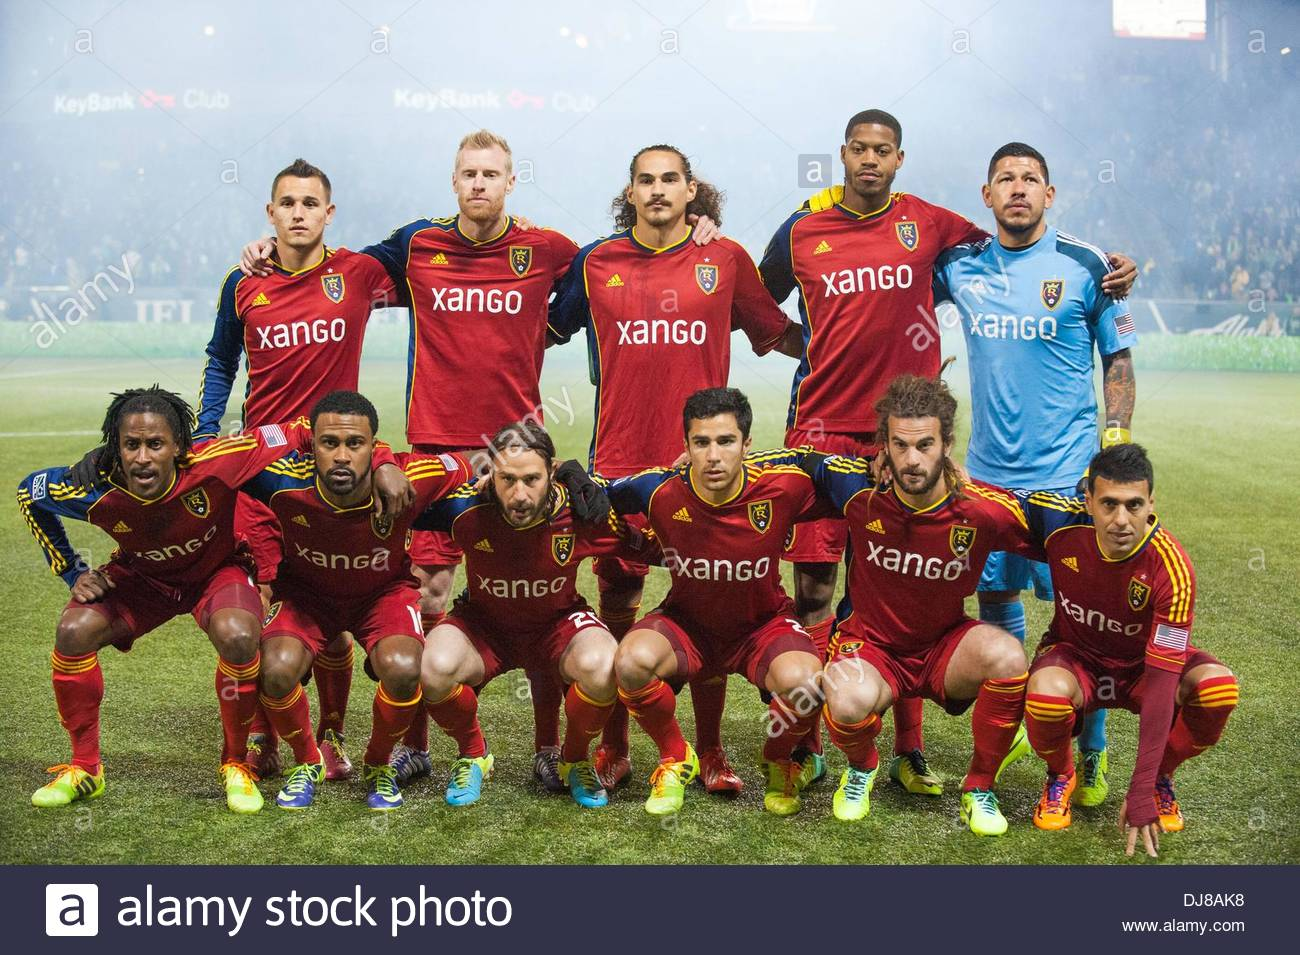 Portland, Oregon, US, . 24th Nov, 2013. The Real Salt Lake starting lineup. Real Salt Lake defeated Portland Timbers 1-0 to win the MLS Western Championship. The Timbers played host to RSL at Portland's Jeld-Wen Field to a sell out crowd. Credit:  Ken Hawkins/ZUMAPRESS.com/Alamy Live News - Stock Image